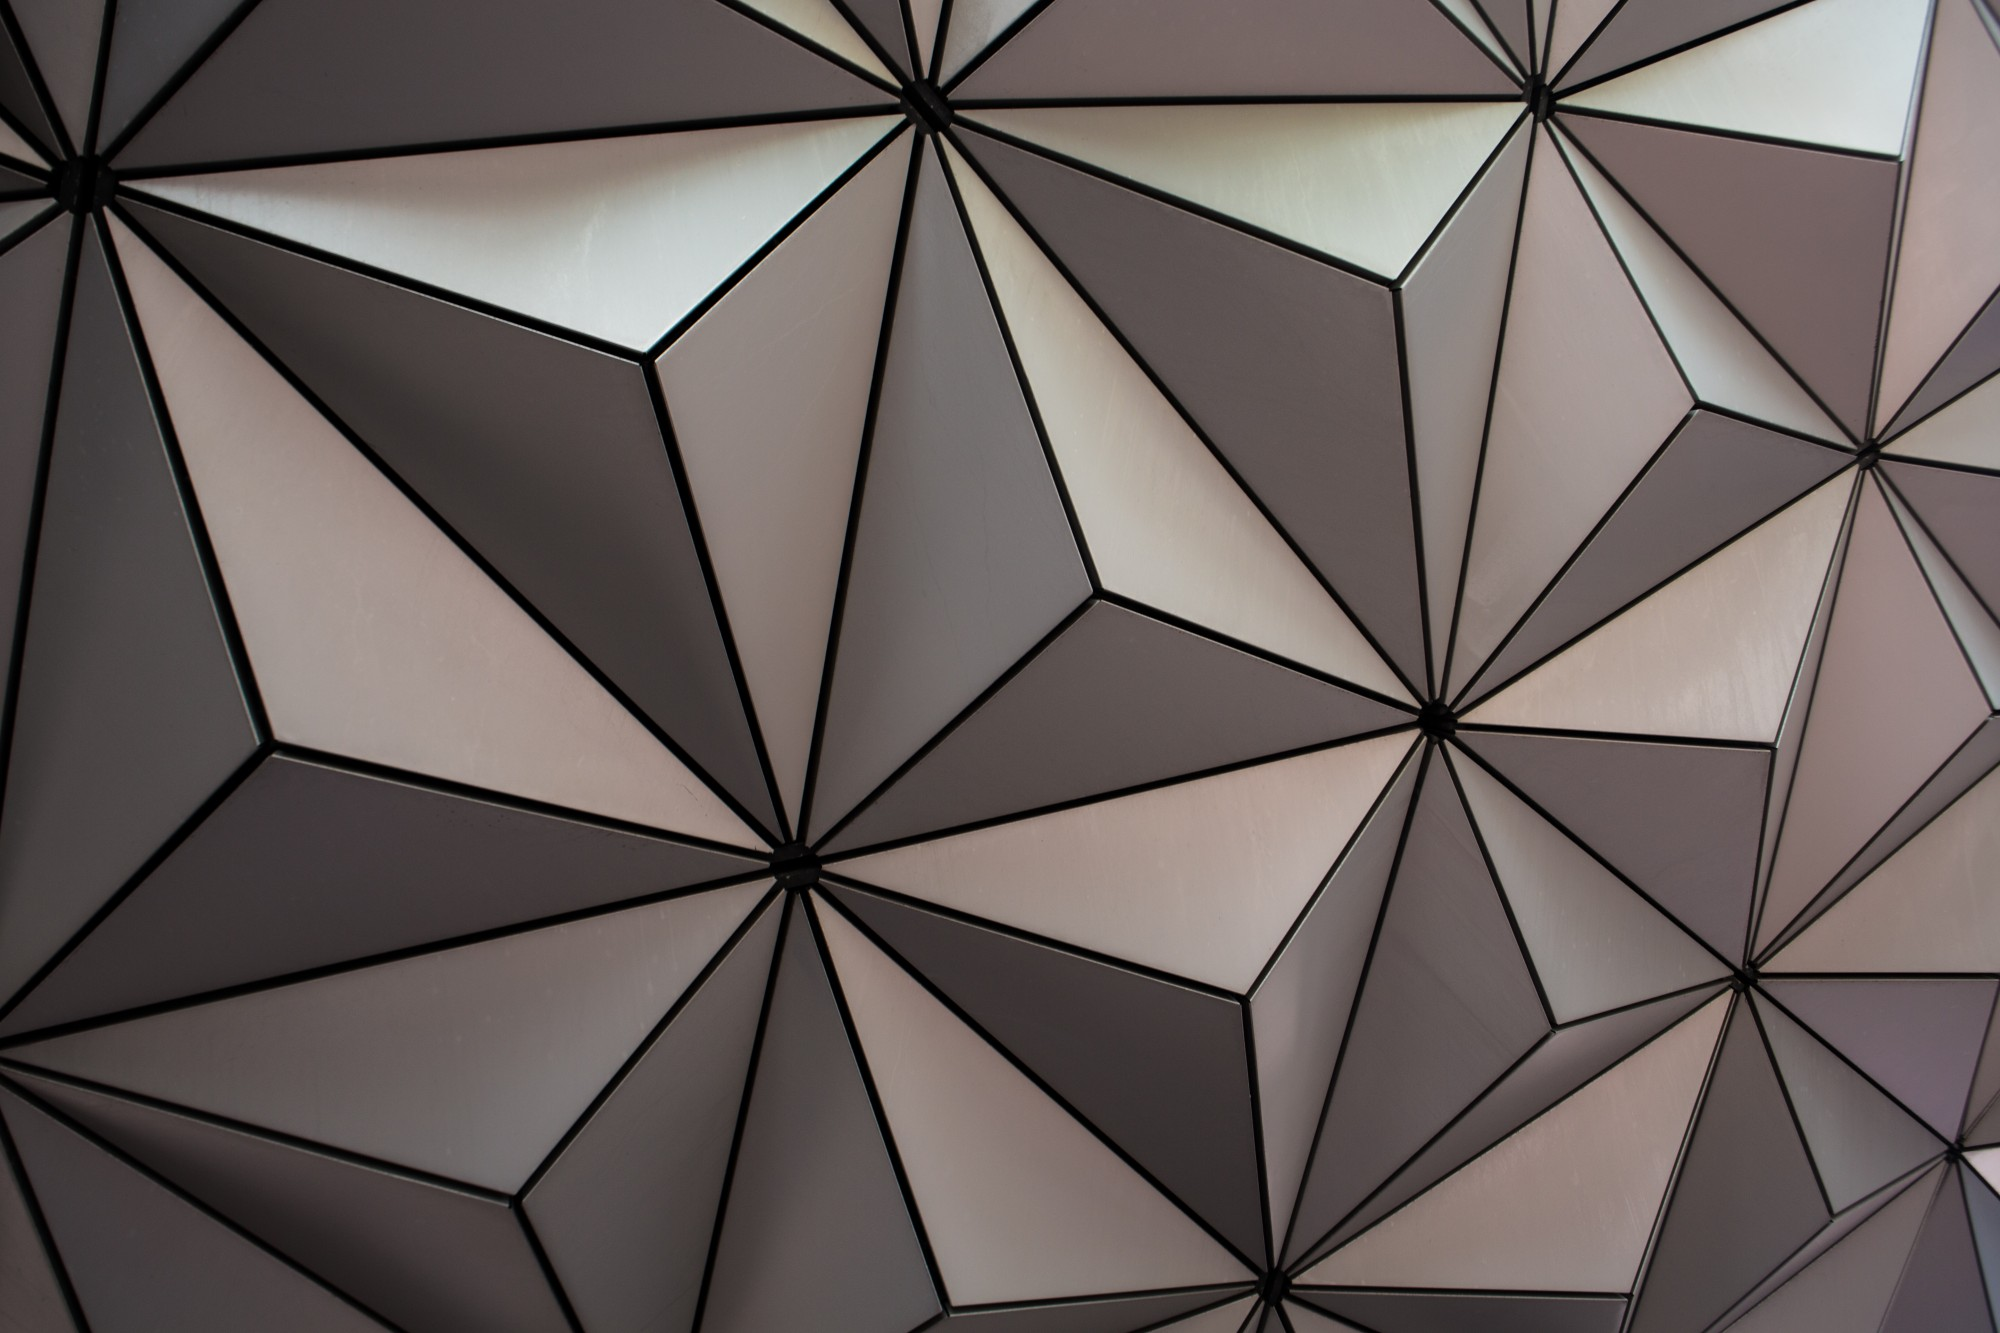 Abstract Epcot